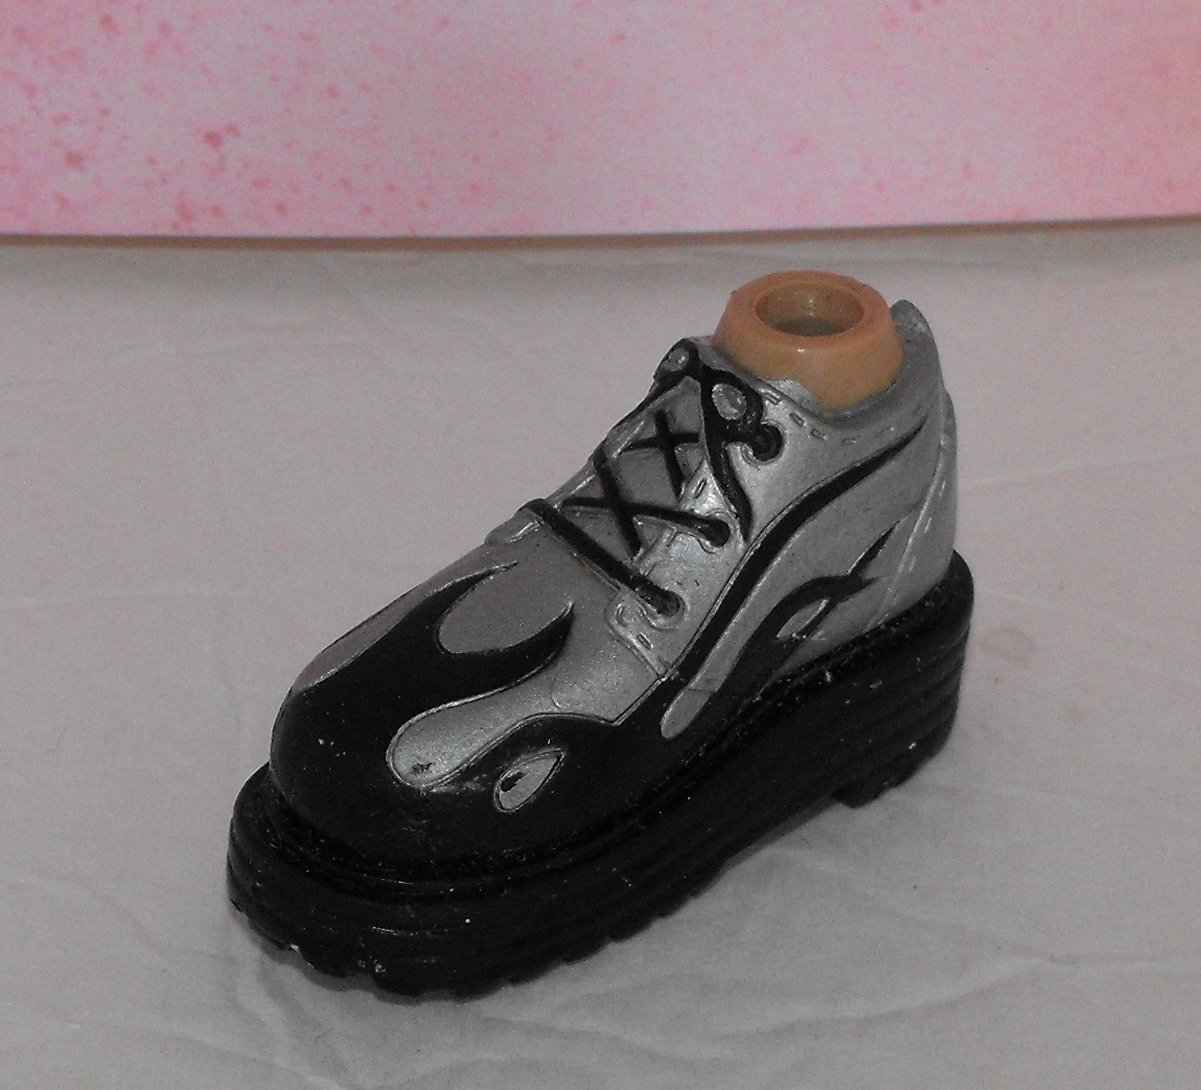 Bratz Boyz Silver Black Flames Shoe Foot Part